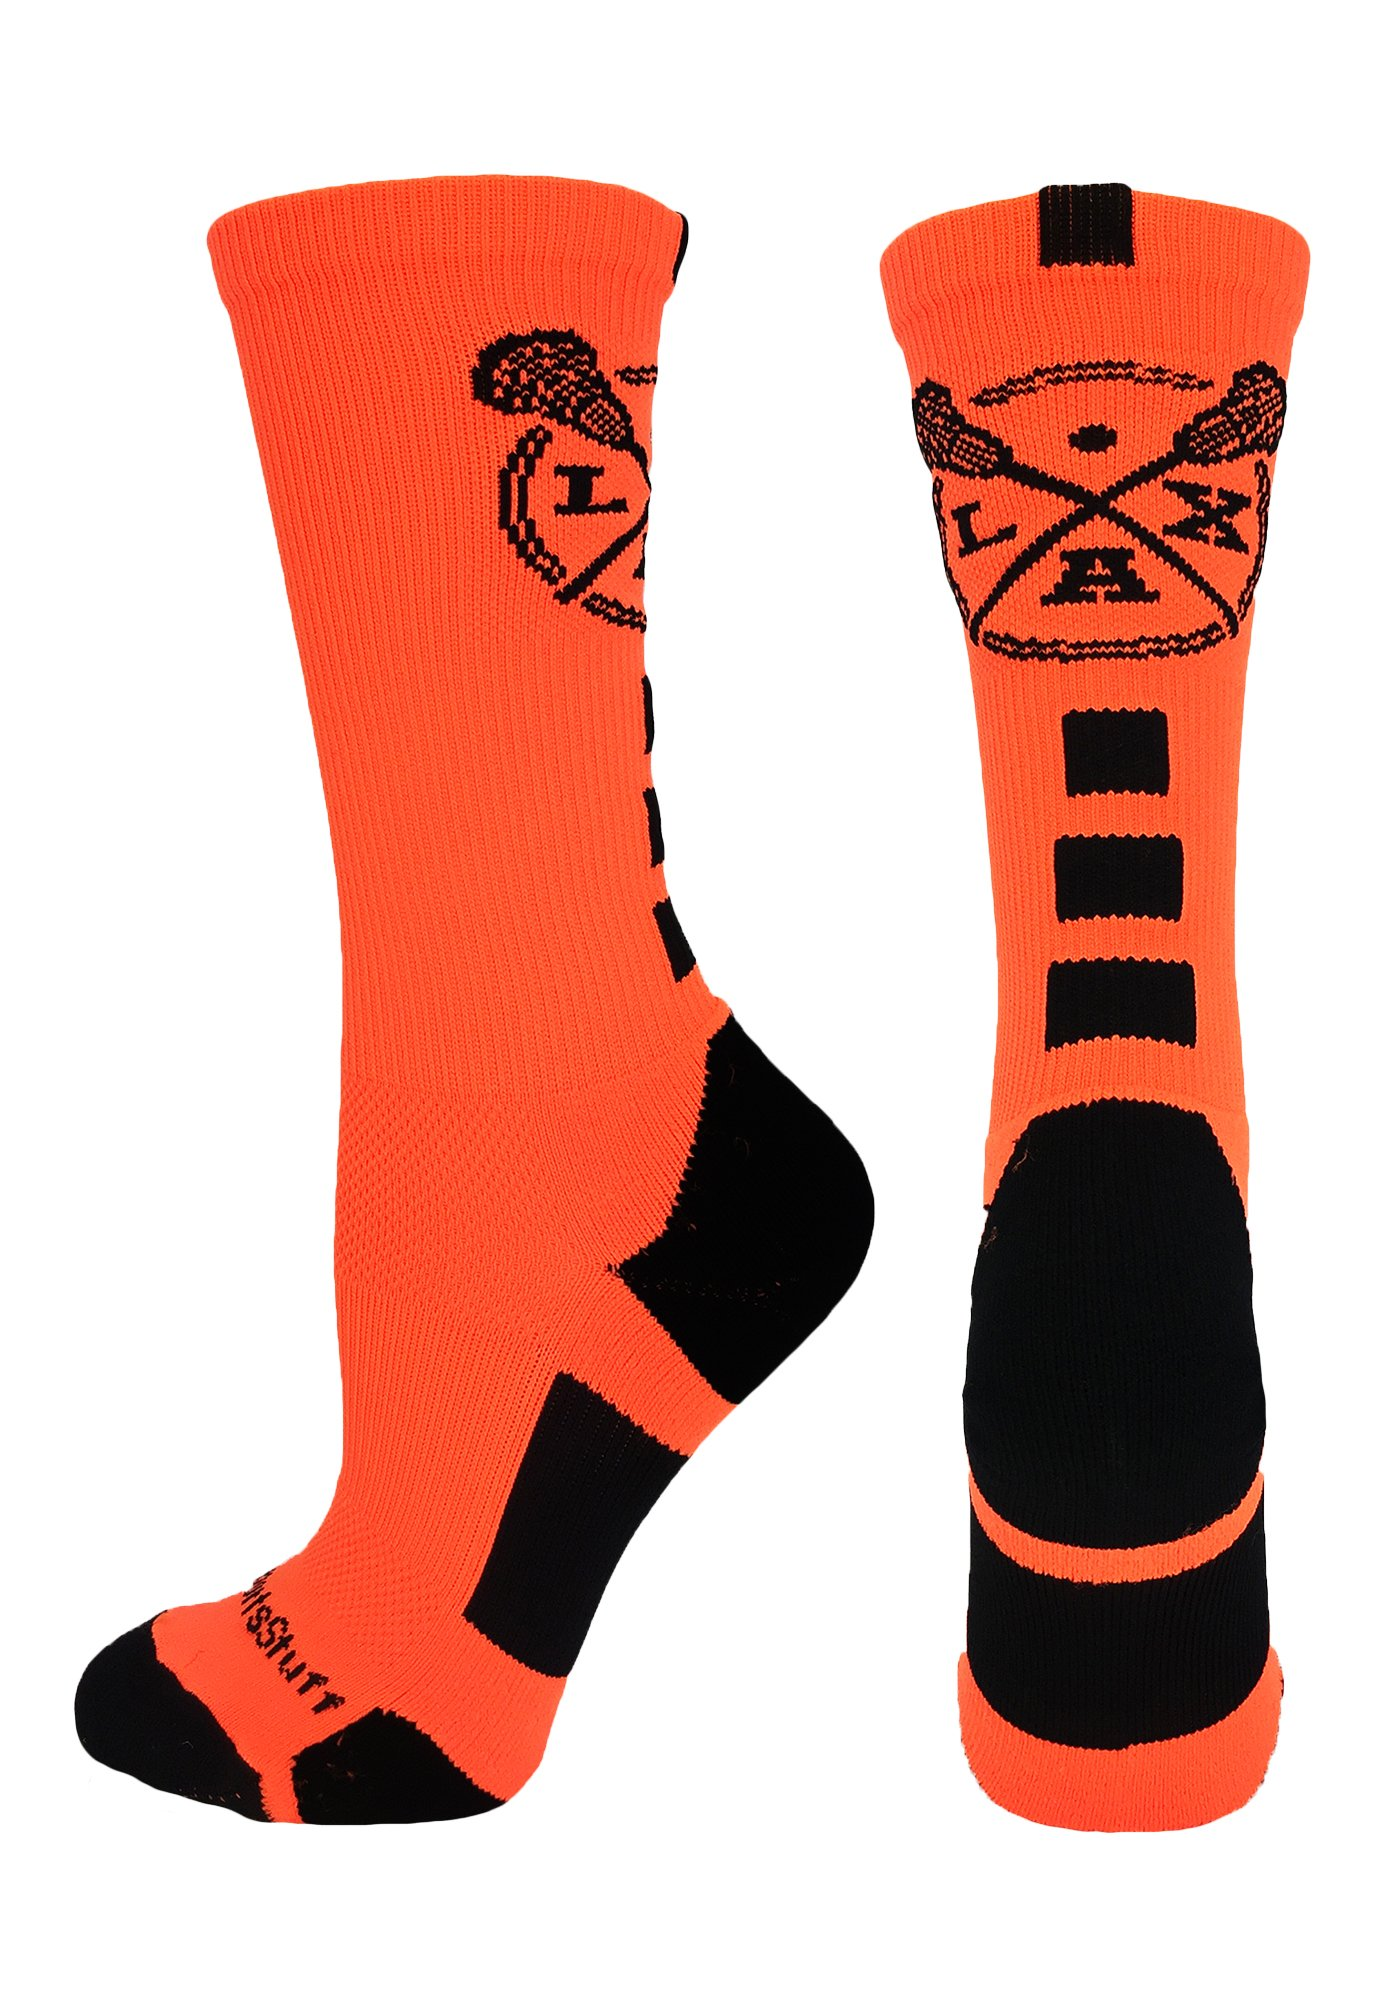 MadSportsStuff LAX Lacrosse Socks with Lacrosse Sticks Athletic Crew Socks (Neon Orange/Black, Small) by MadSportsStuff